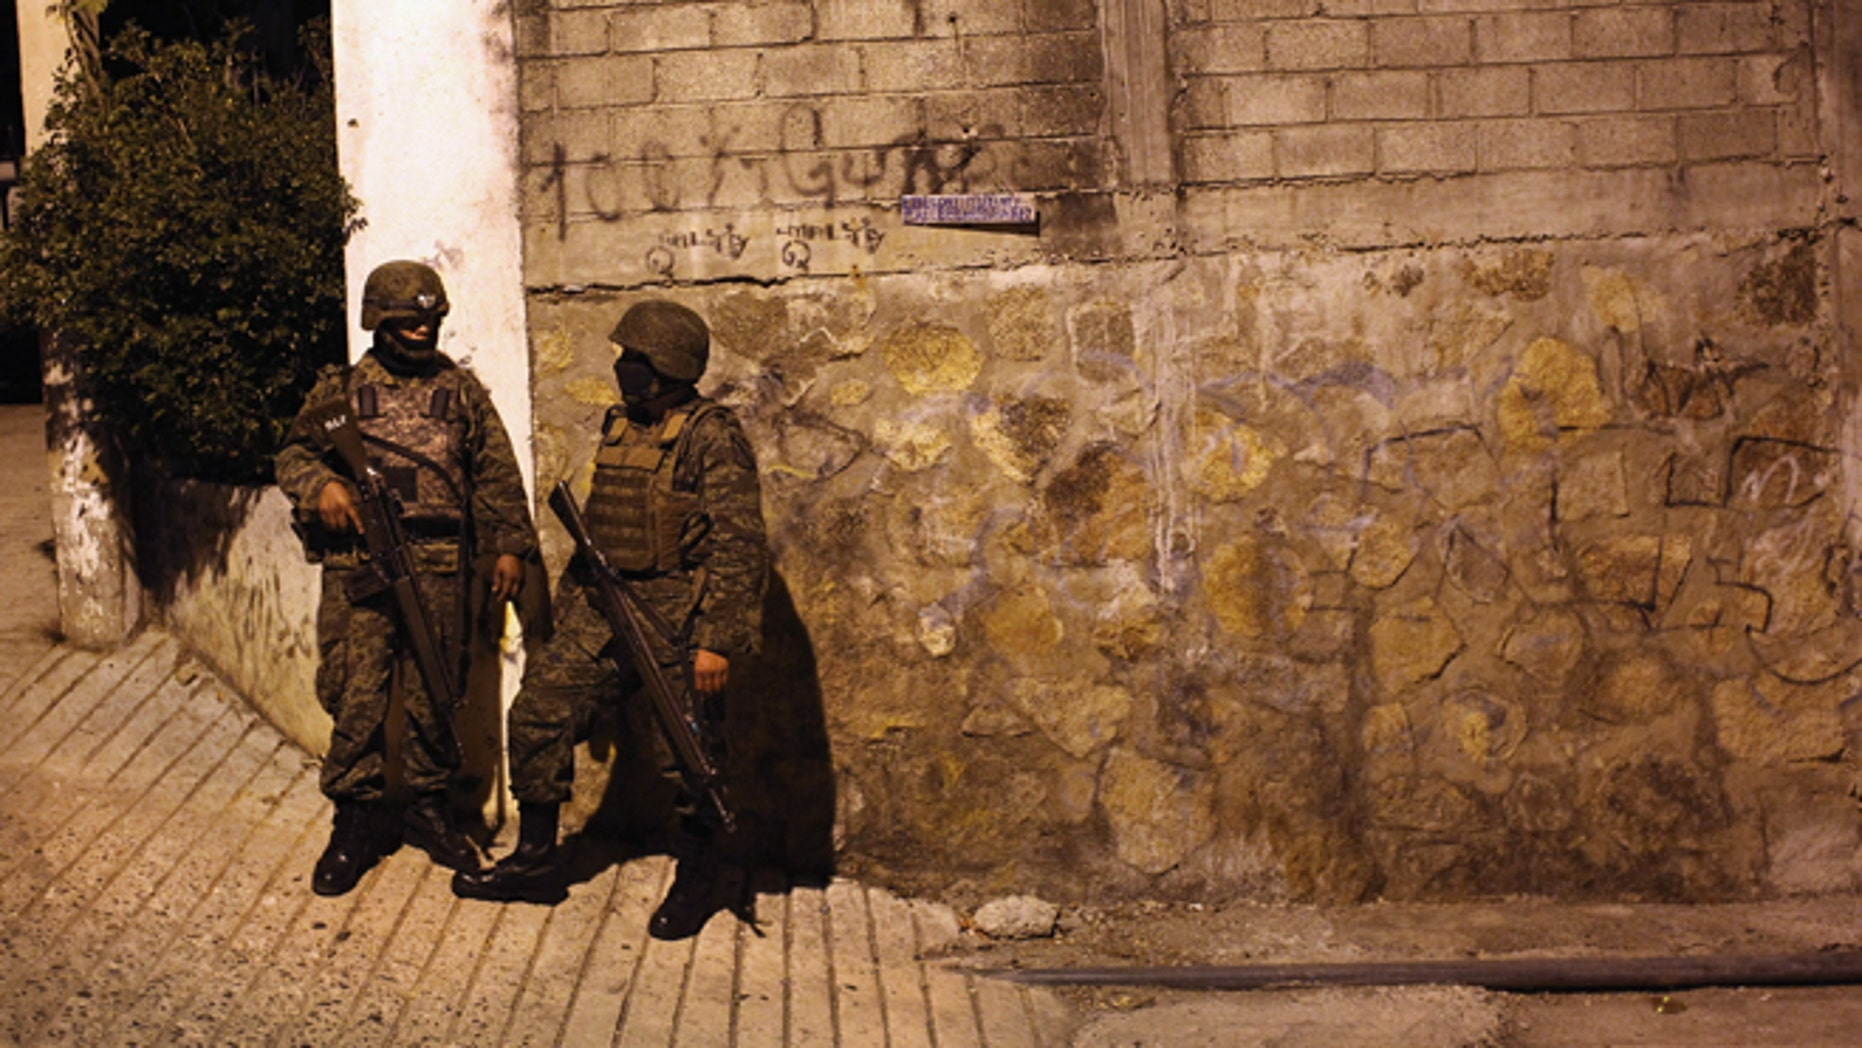 ACAPULCO, MEXICO - MARCH 03:  Mexican army soldiers stand guard near a suspected drug-related murder site  March 3, 2012 in Acapulco, Mexico. A forensics team excavated five corpses from the floor of an abandoned house. Officials said the five victims were apparently buried alive in concrete. Drug violence has surged in the coastal resort in the last year, making Acapulco the second most deadly city in Mexico after Juarez. One of Mexico's top tourist destinations, Acapulco has suffered a drop in business, especially from foreign tourists, due to the violence. Toursim accounts for about 70 percent of the economy of Acapulco's state of Guerrero and 9 percent of Mexico's economy.  (Photo by John Moore/Getty Images)